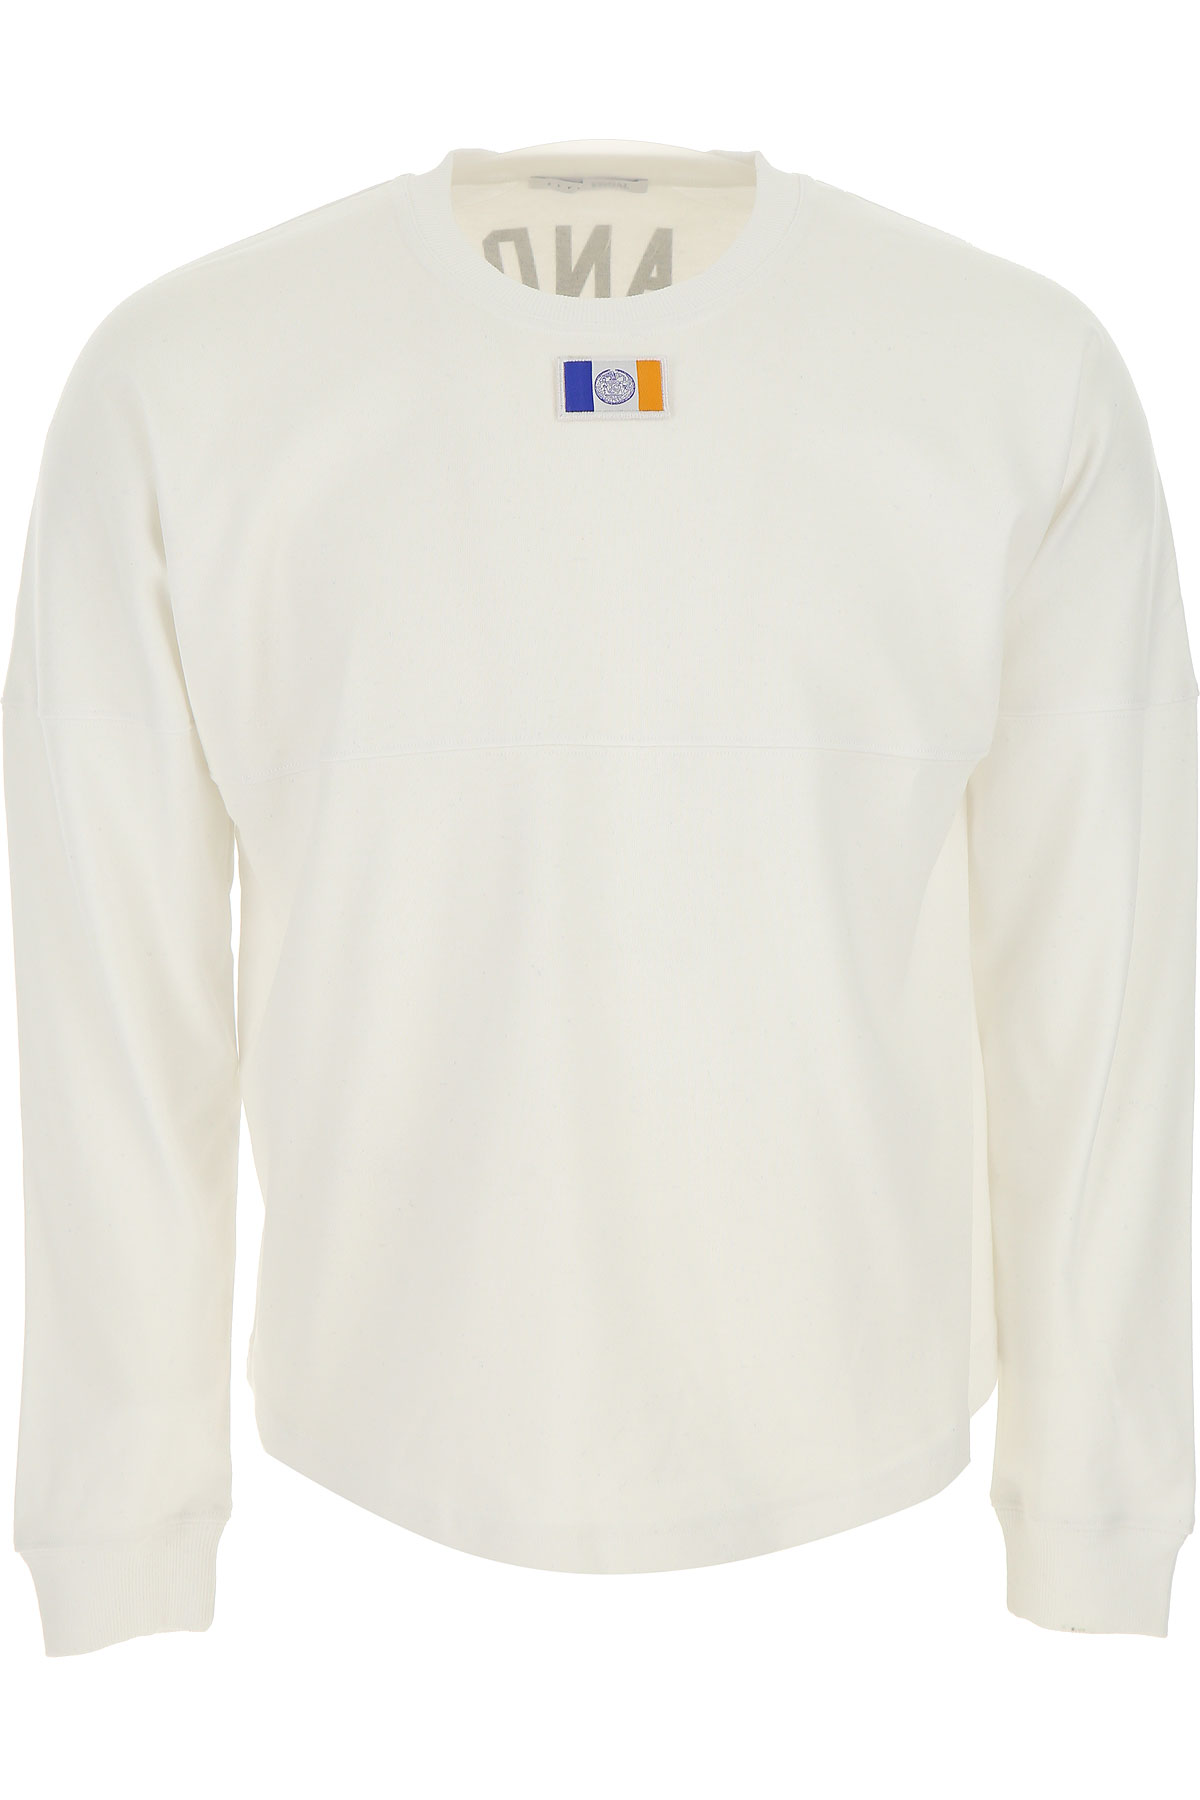 ALYX Sweatshirt for Men On Sale in Outlet, White, Cotton, 2019, S XS